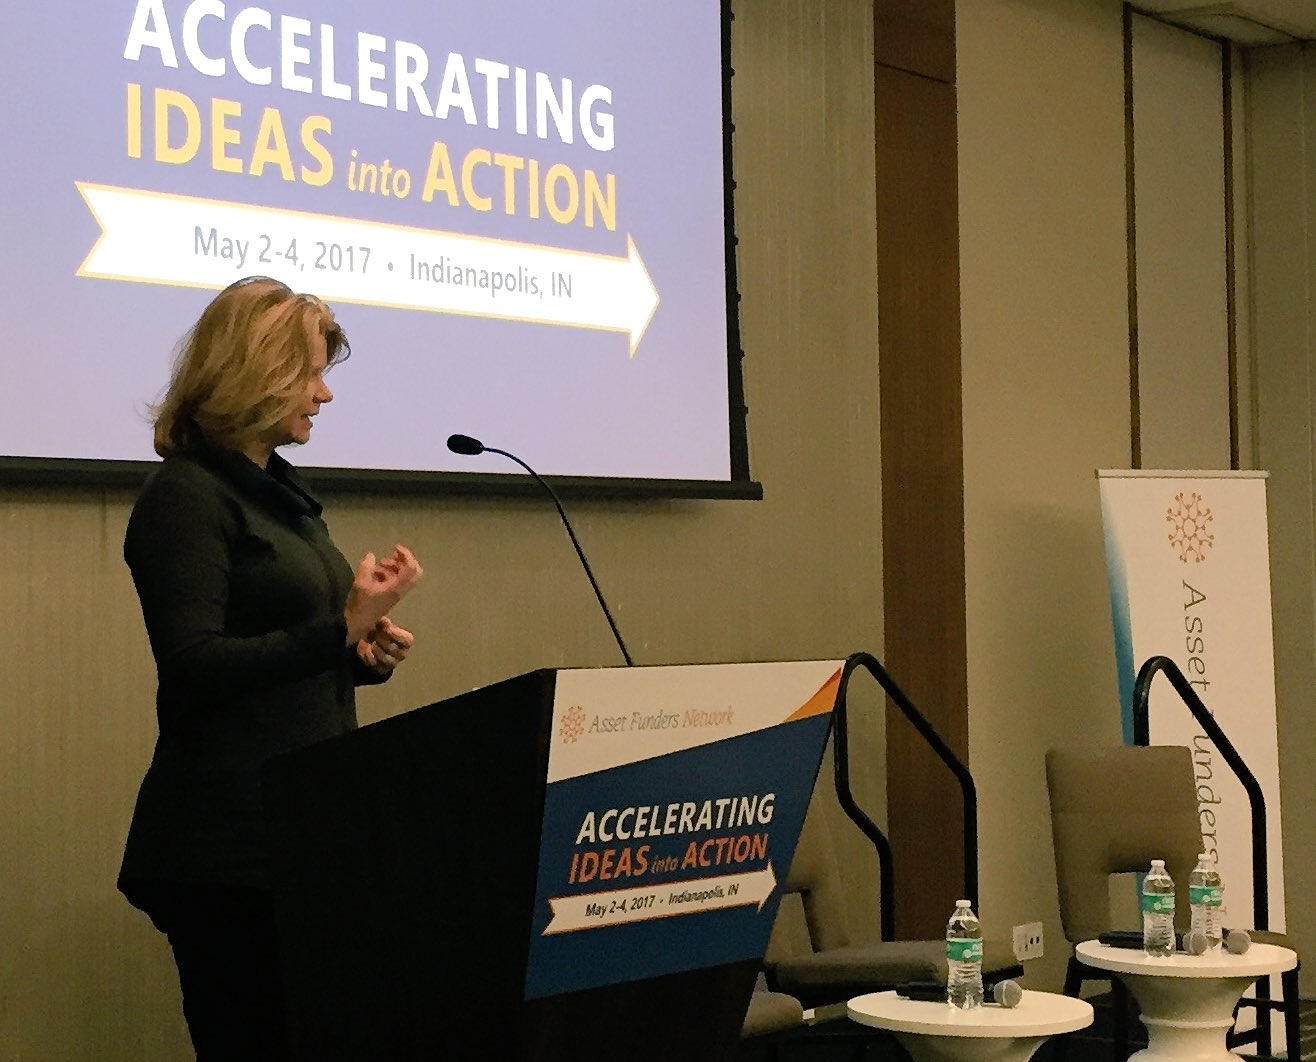 """.@idarademacher at @AssetFunders #ideasintoaction """"bottom 50% of Americans have only 1% of nation's wealth."""" https://t.co/rs5JHqr1xD"""